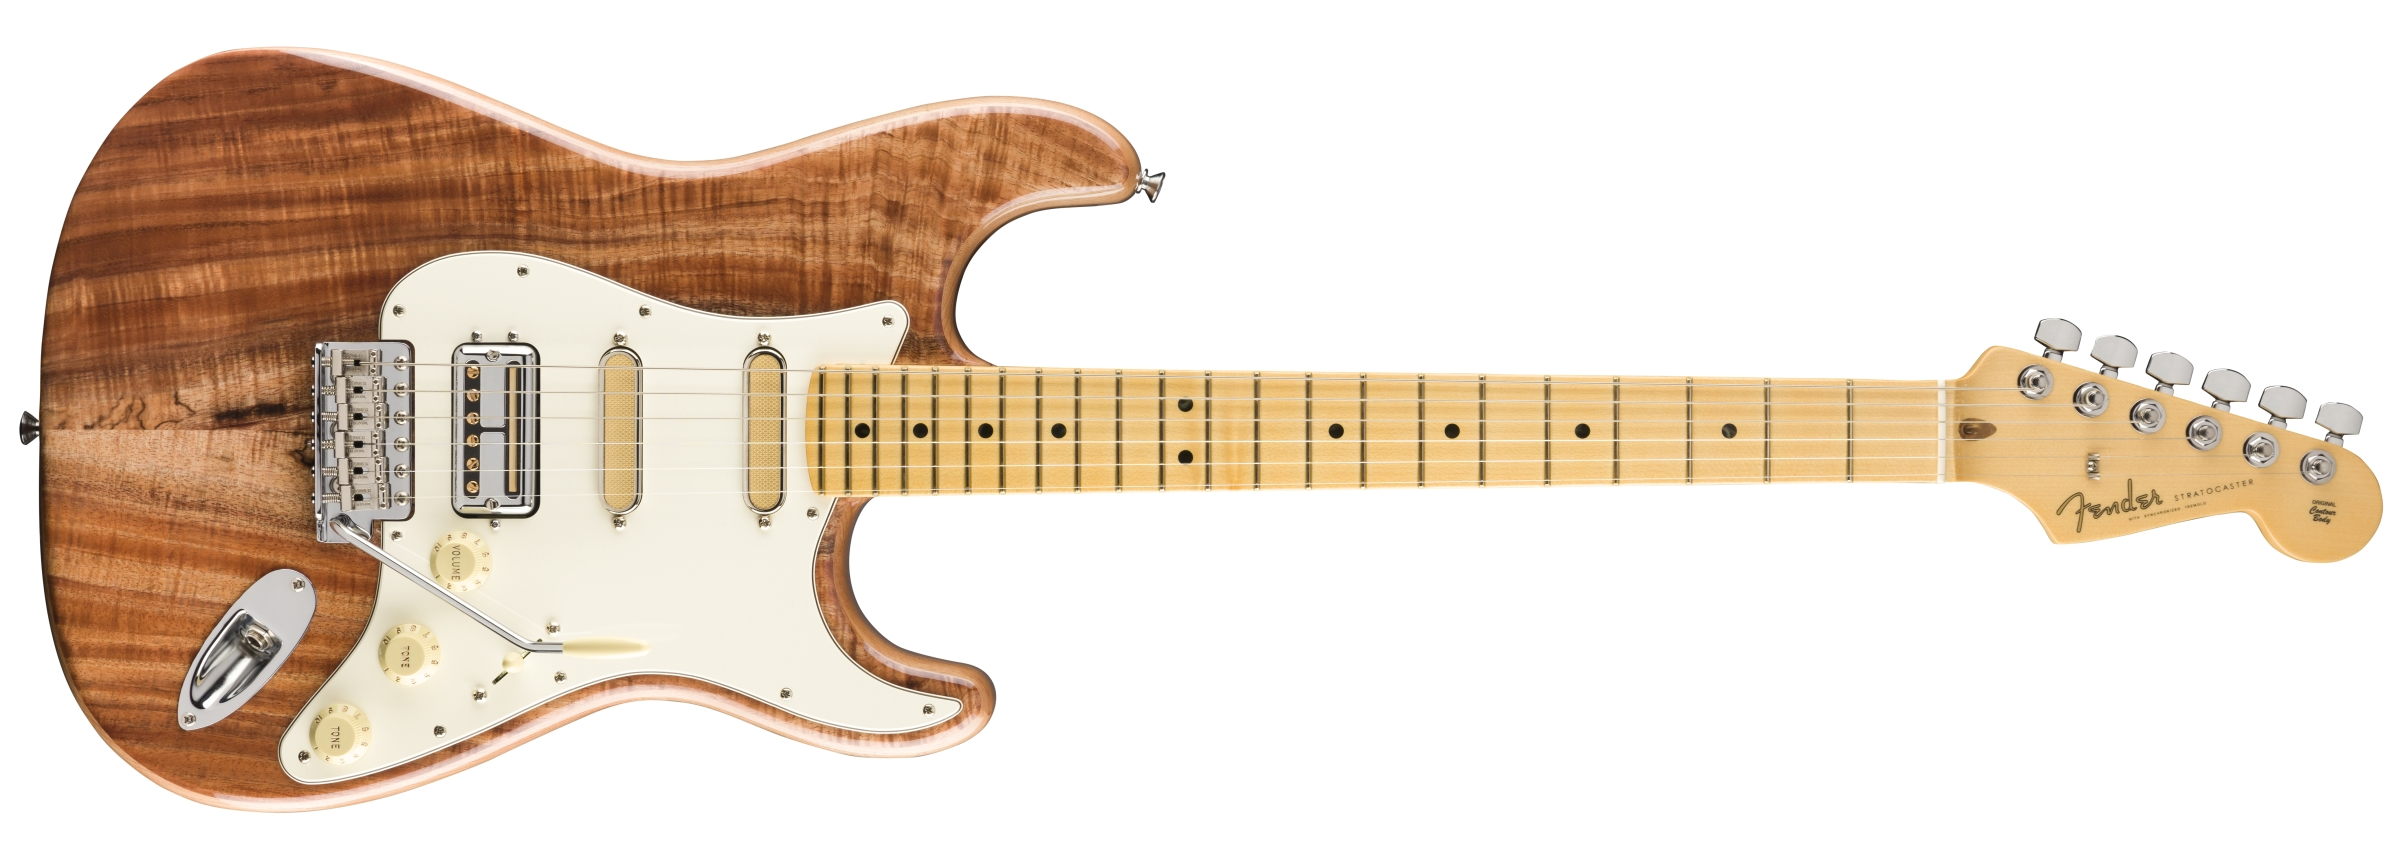 Fender brings the heat with its new Rarities Flame Koa Top Stratocaster | Guitarworld